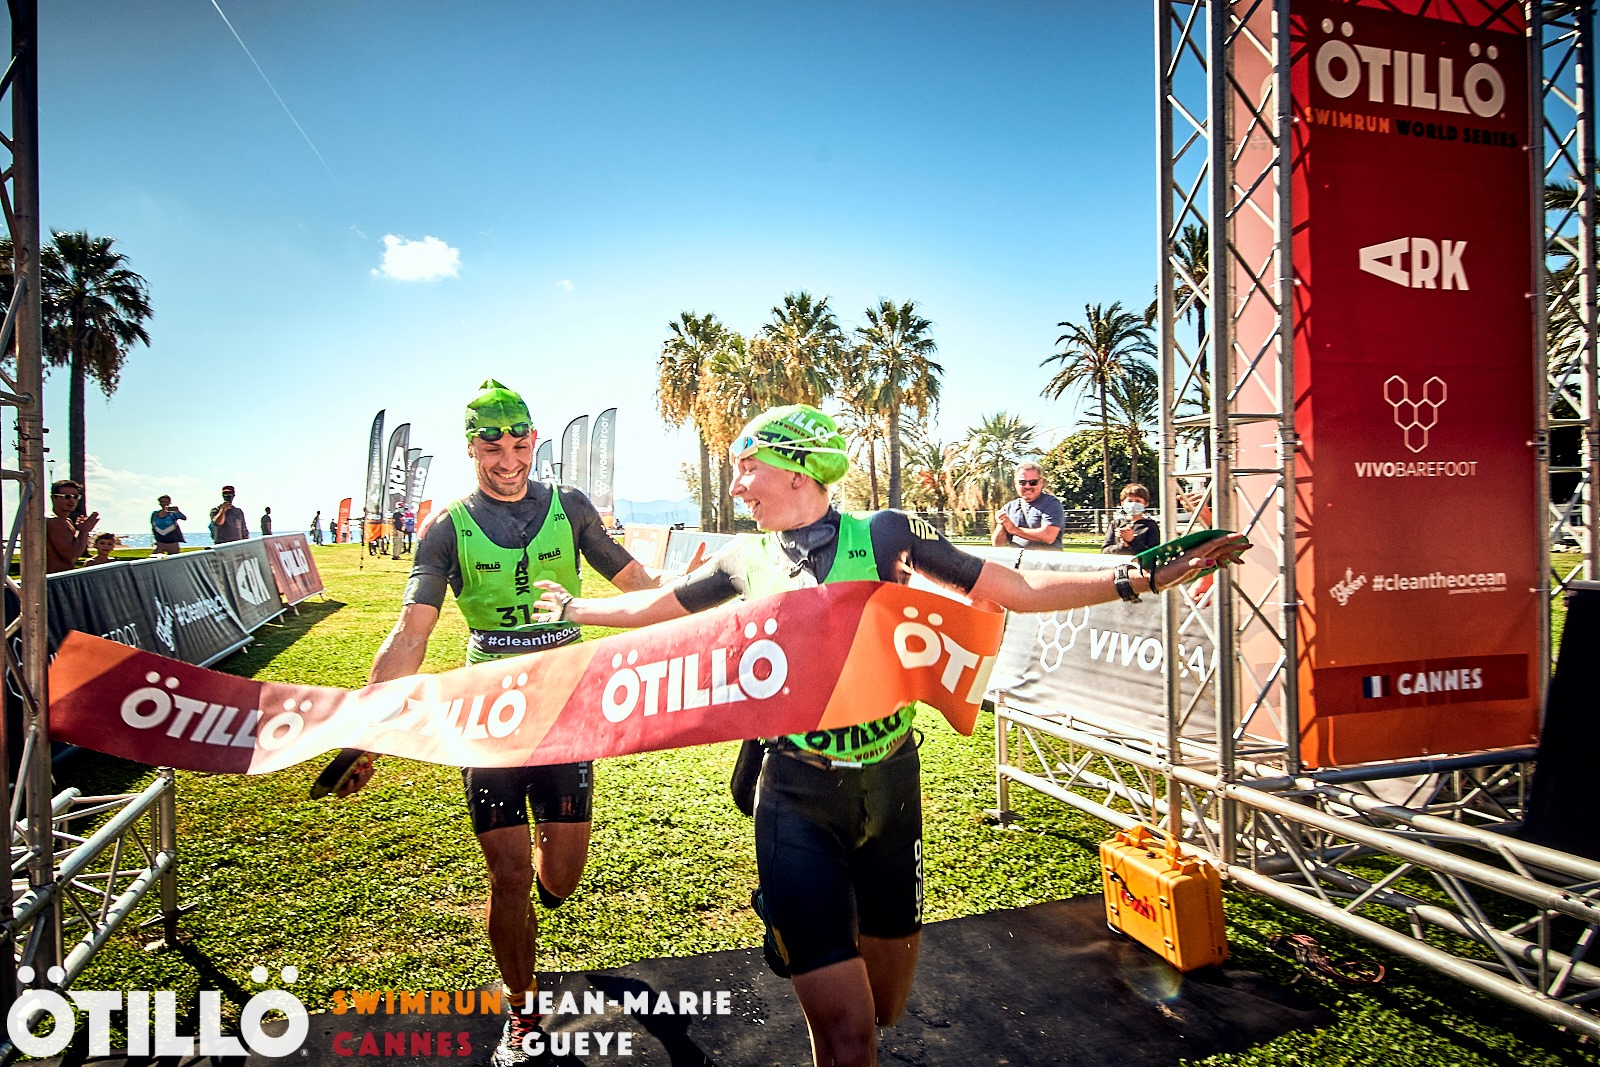 Swimrun Otillo Cannes